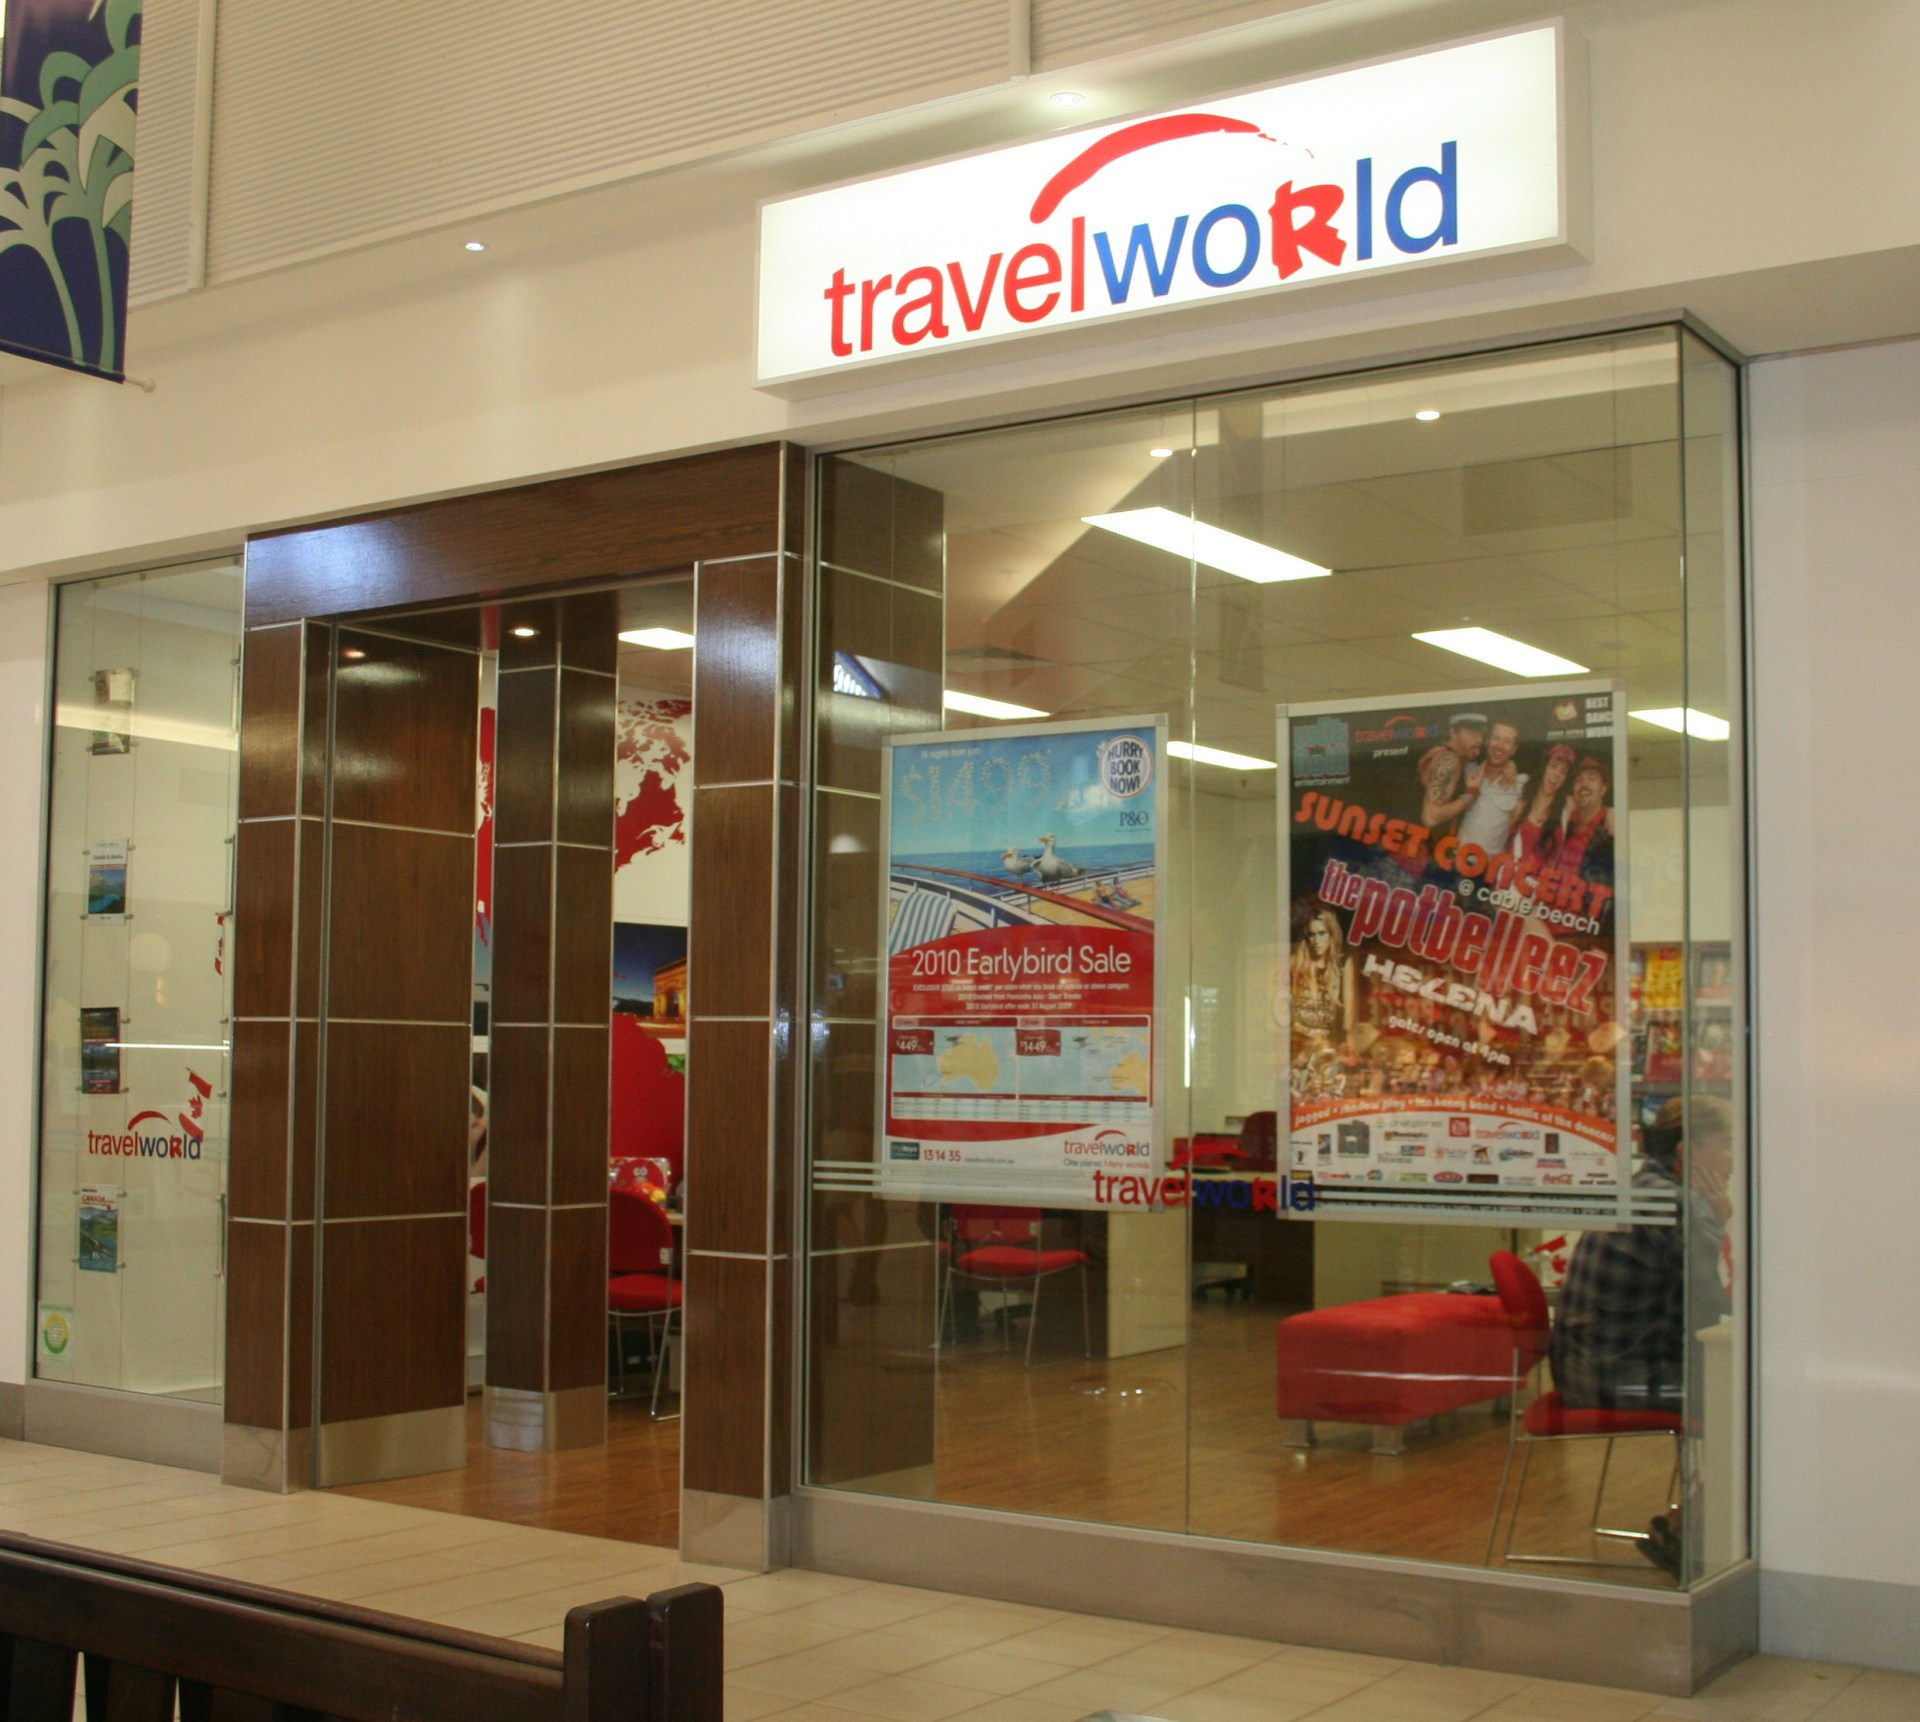 Travelworld - Broome. W.Australia